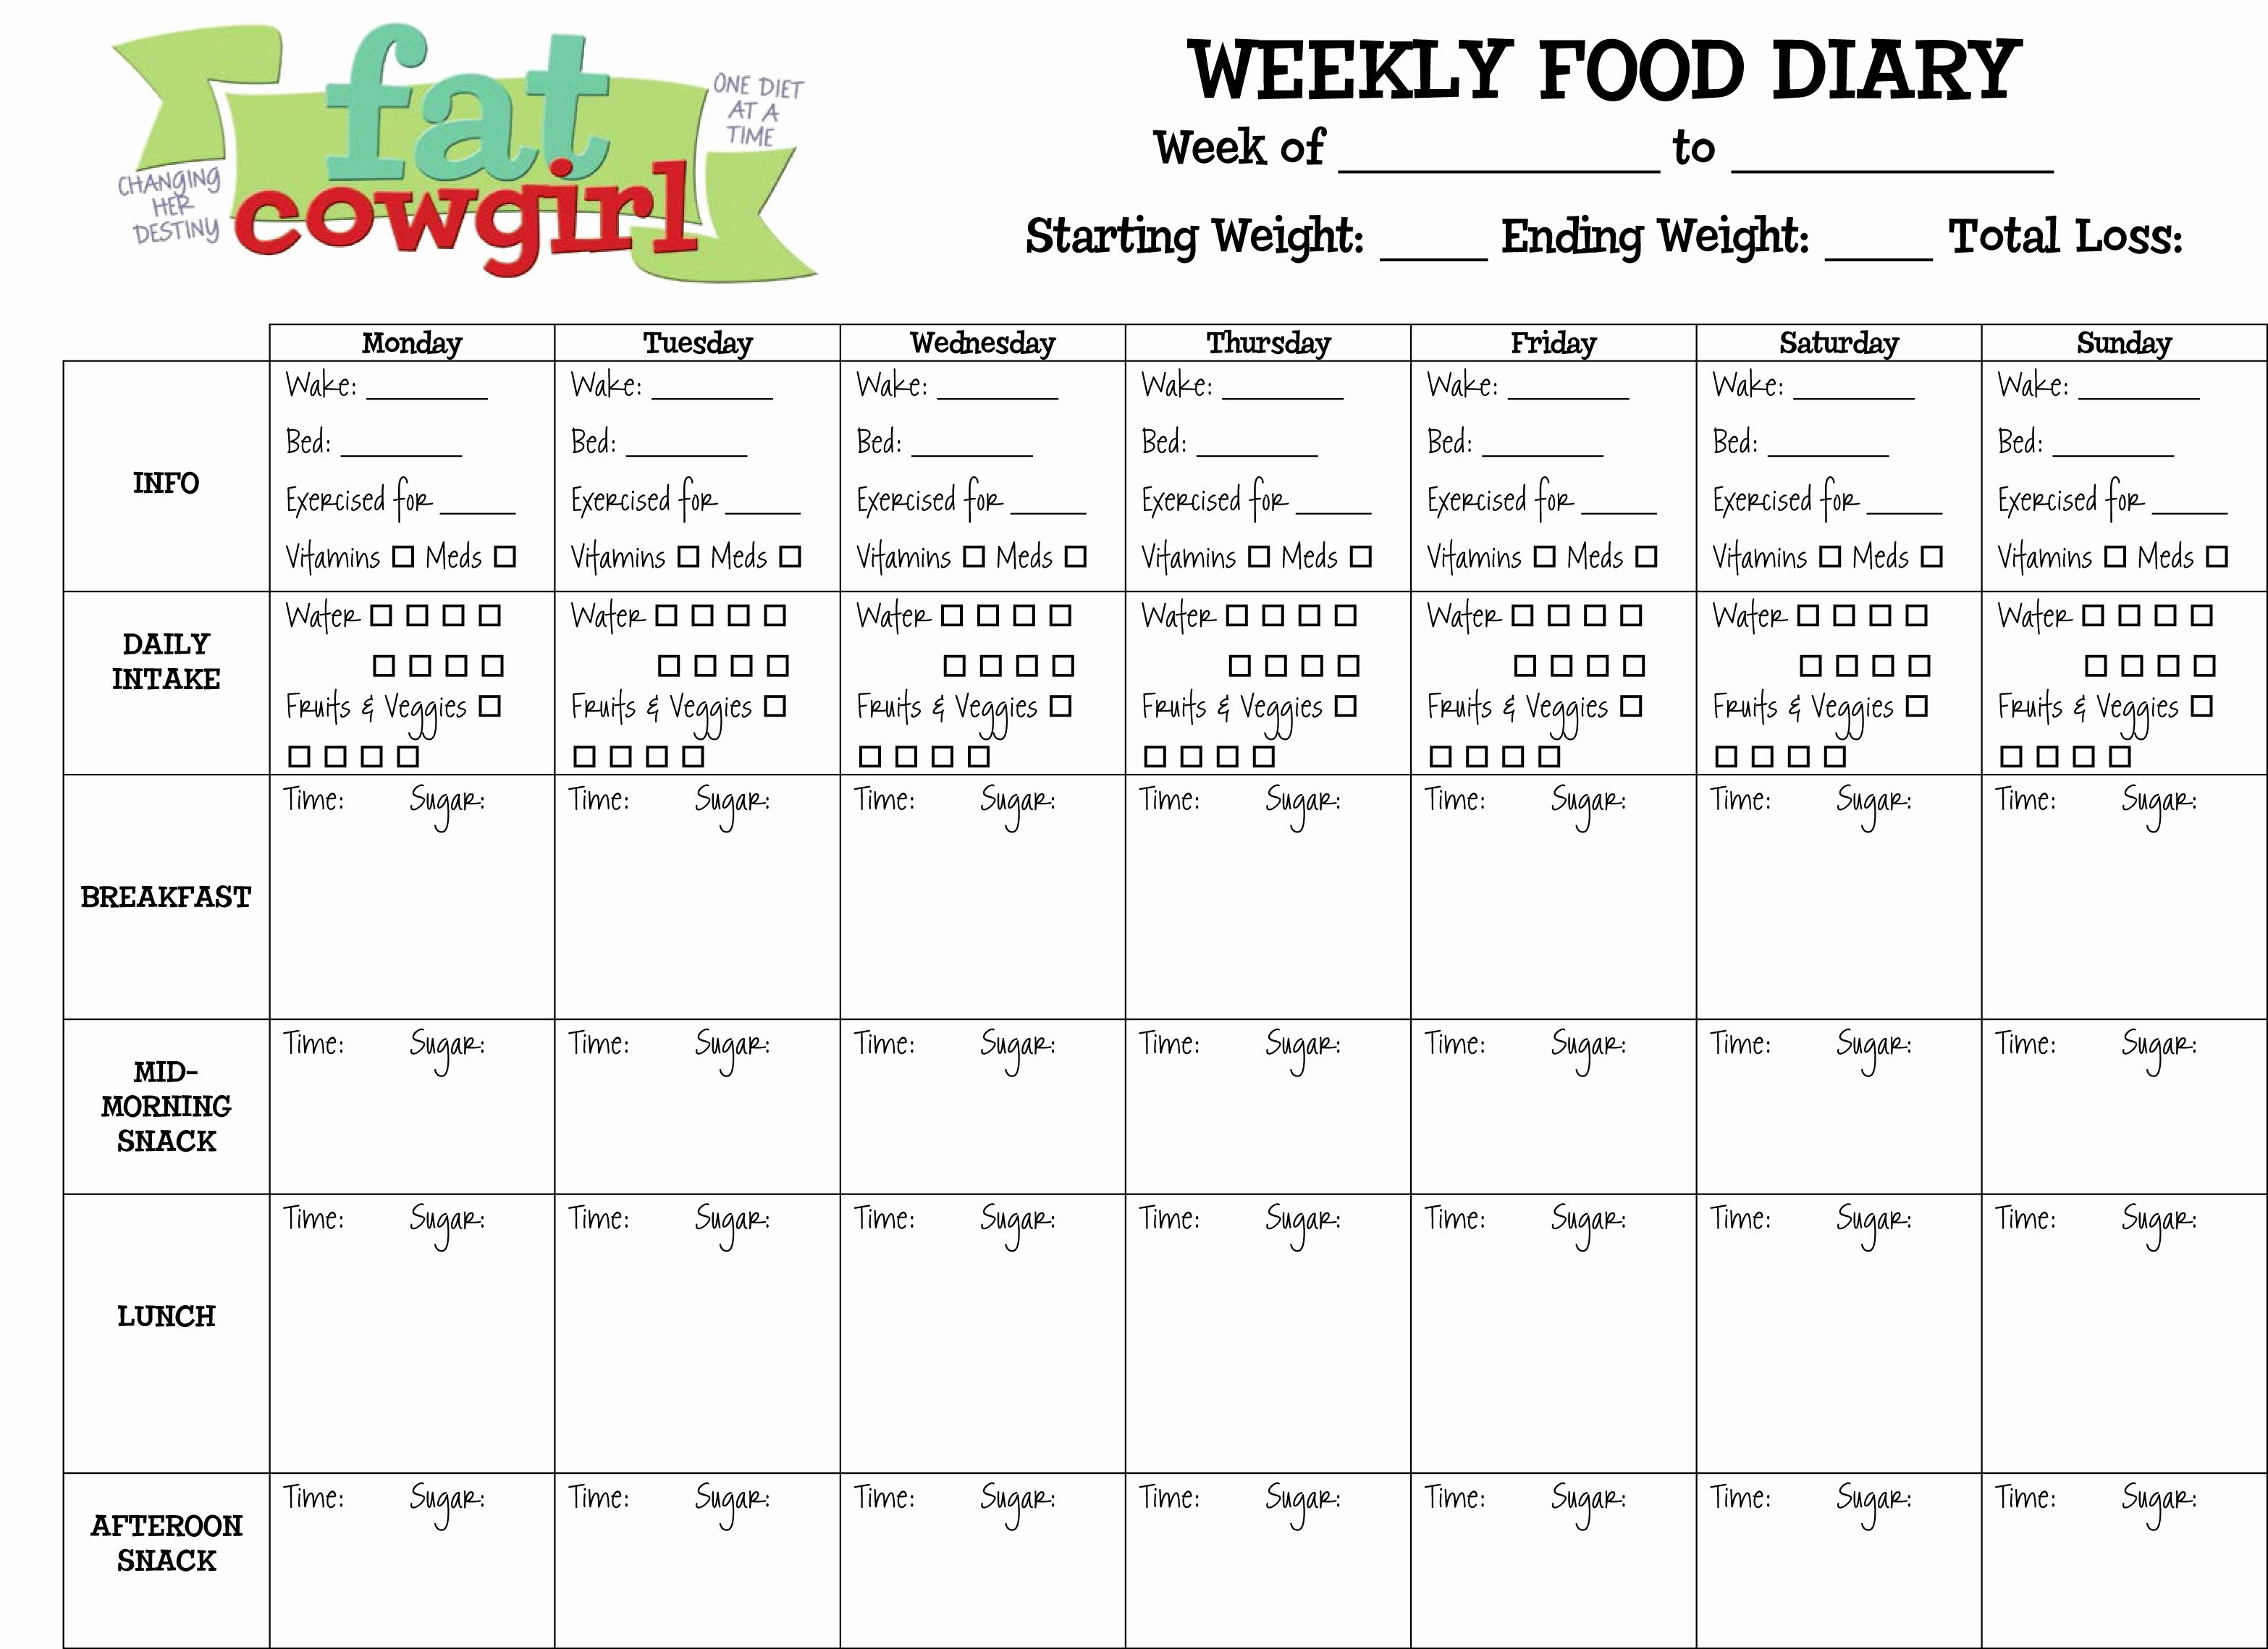 Diabetes Food Diary Printable Unique Diabetic Weekly Food Diary